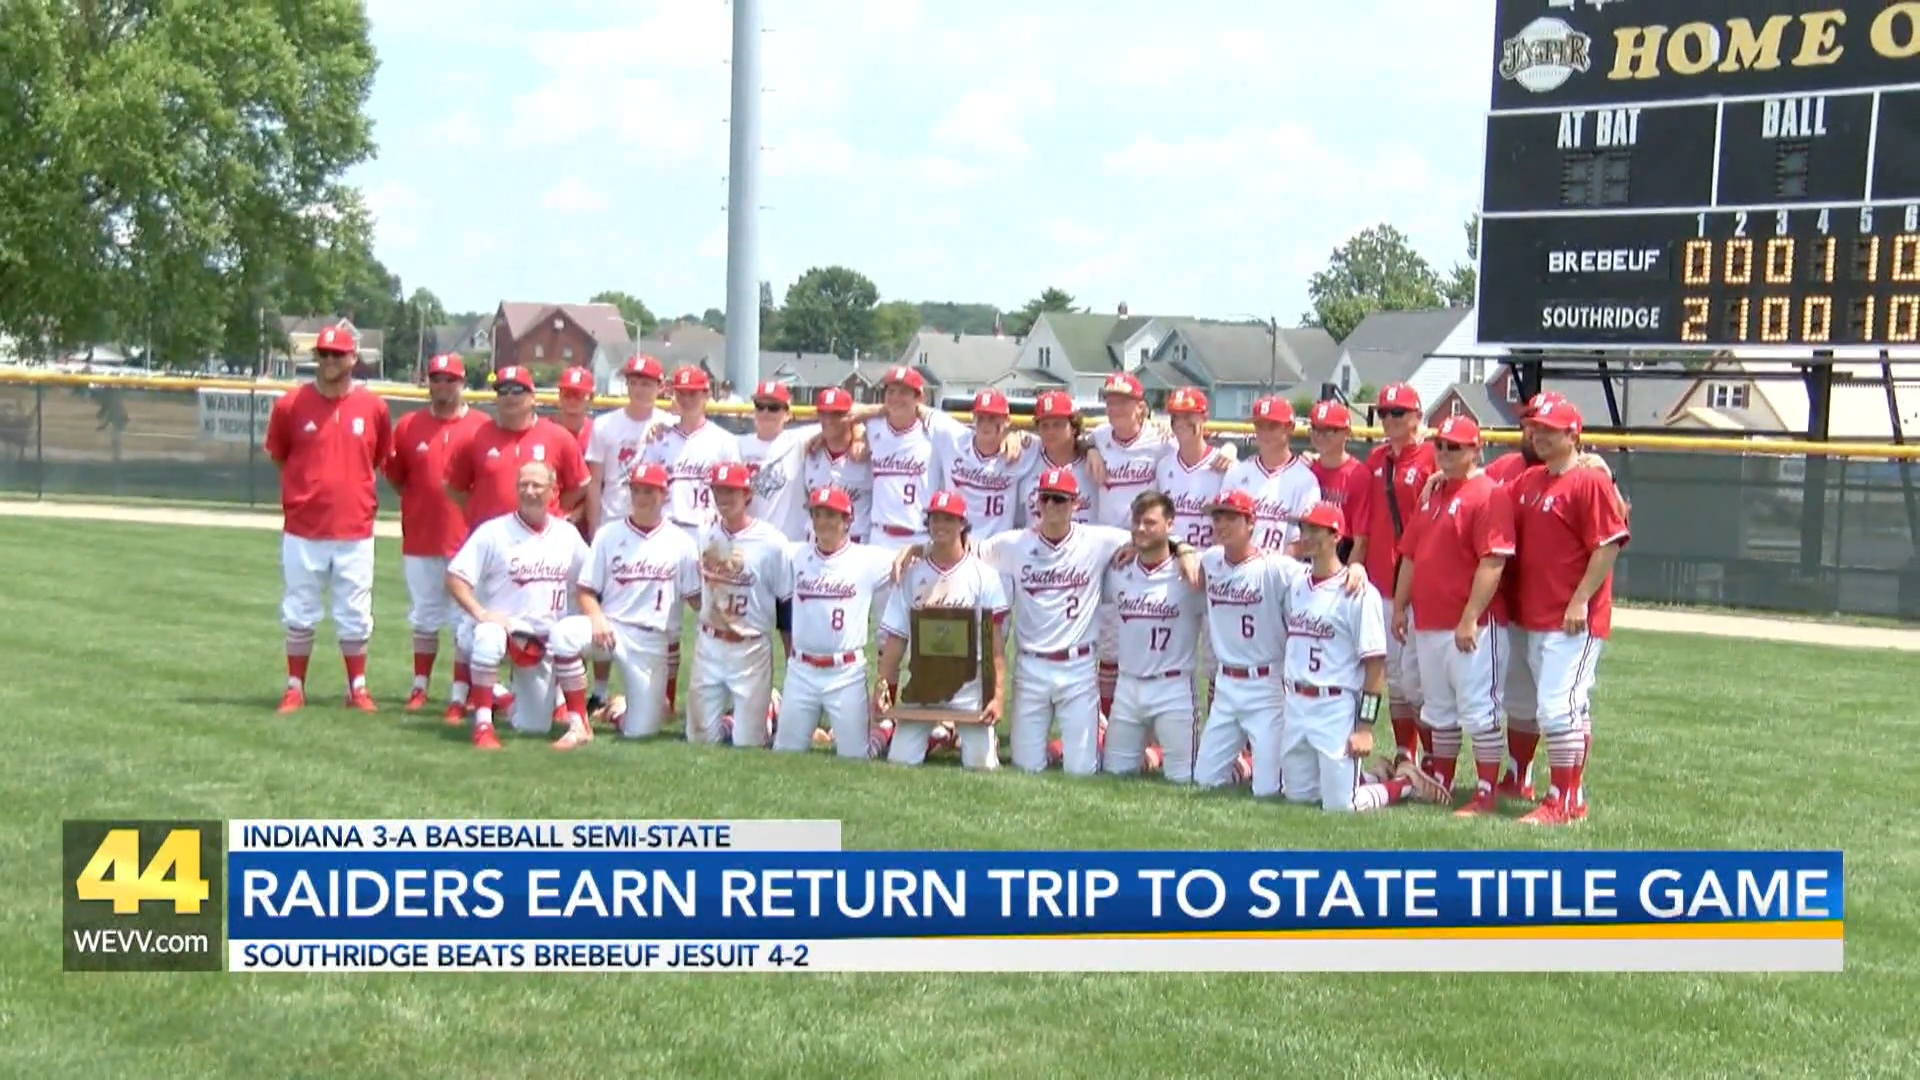 Image for Raiders Earn Return Trip to State Title Game